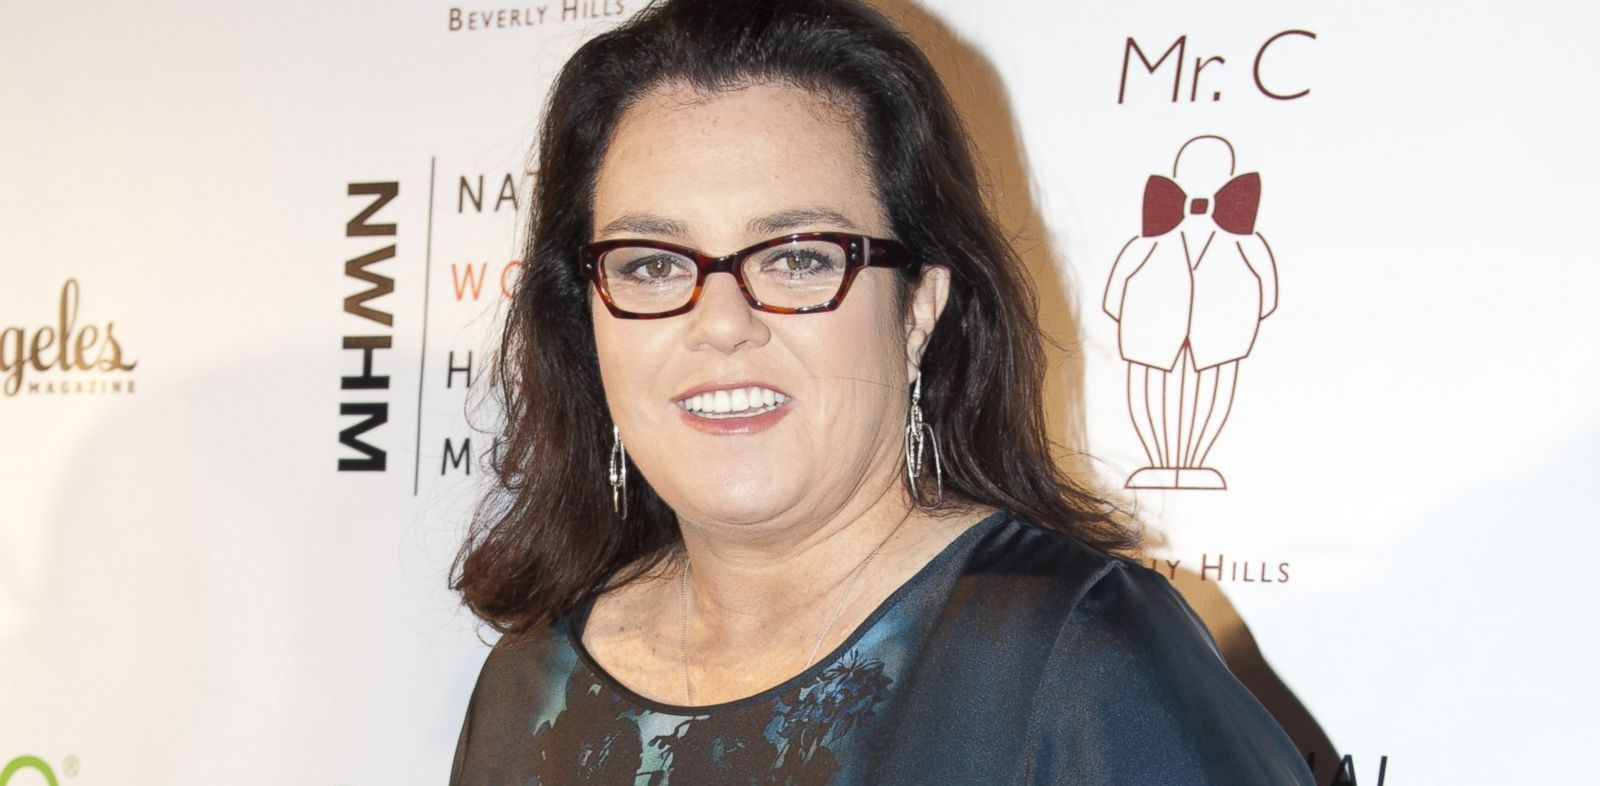 PHOTO: In this file photo, Rosie ODonnell is pictured on Oct. 24, 2013 in Beverly Hills, Calif.